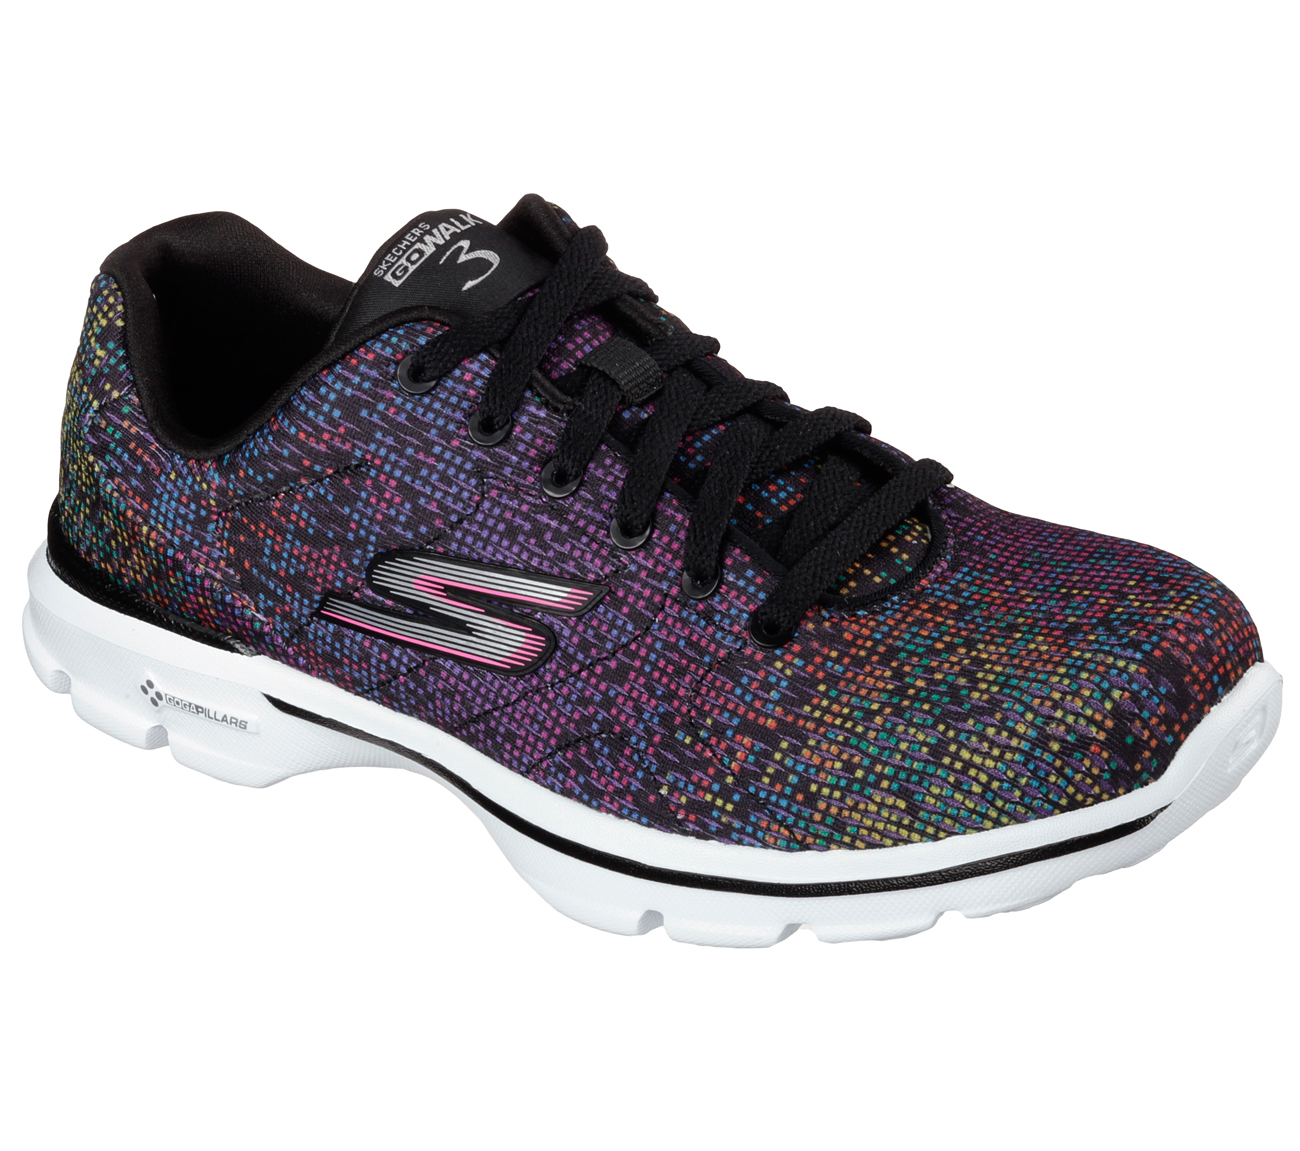 432645c5388 Buy skechers go walk 3 shoes   OFF63% Discounted